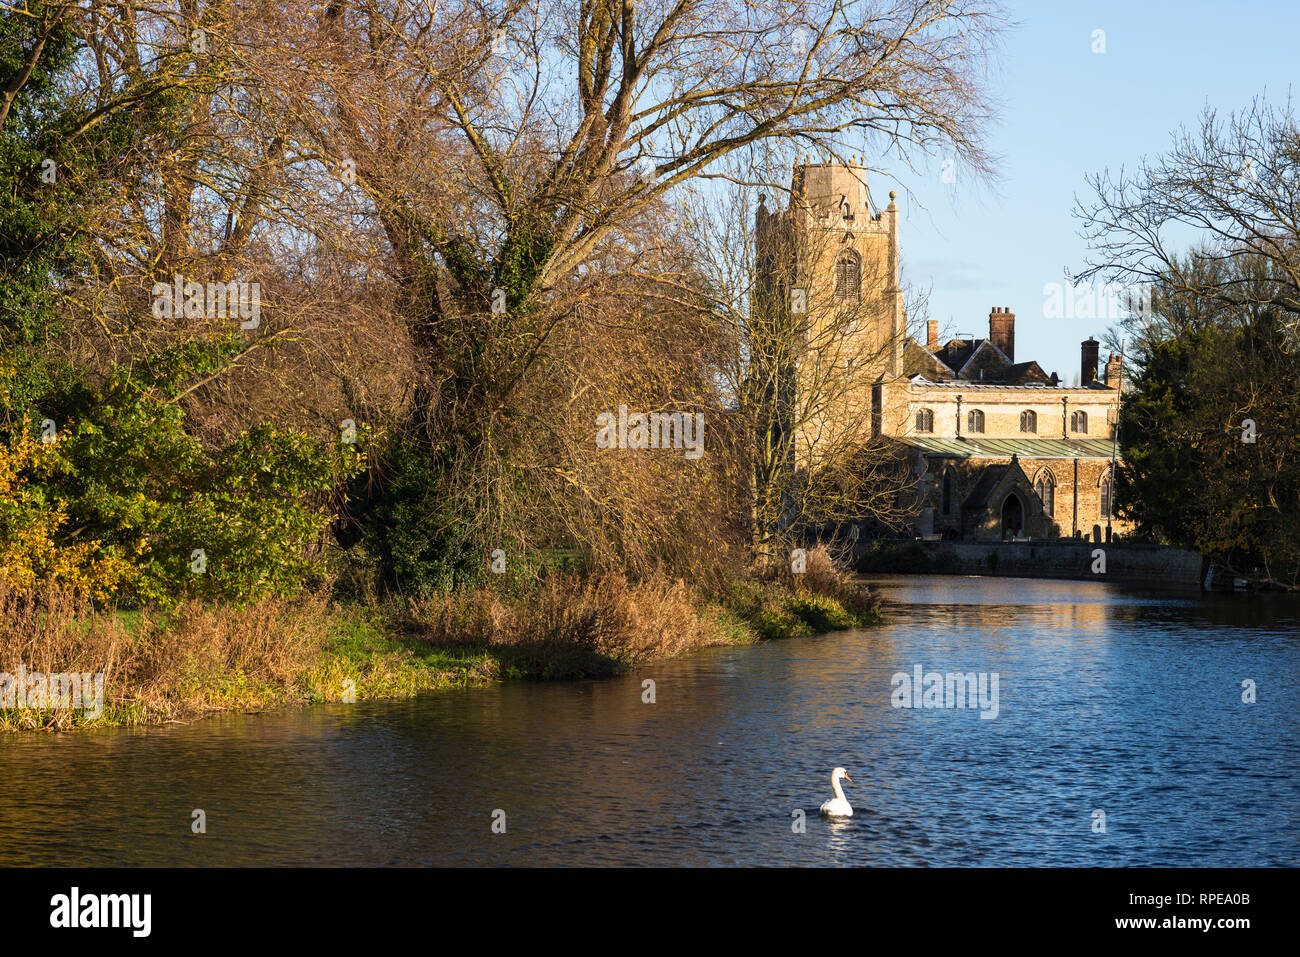 St James church on the River Great Ouse at Hemingford Grey Cambridgeshire England UK - Stock Image